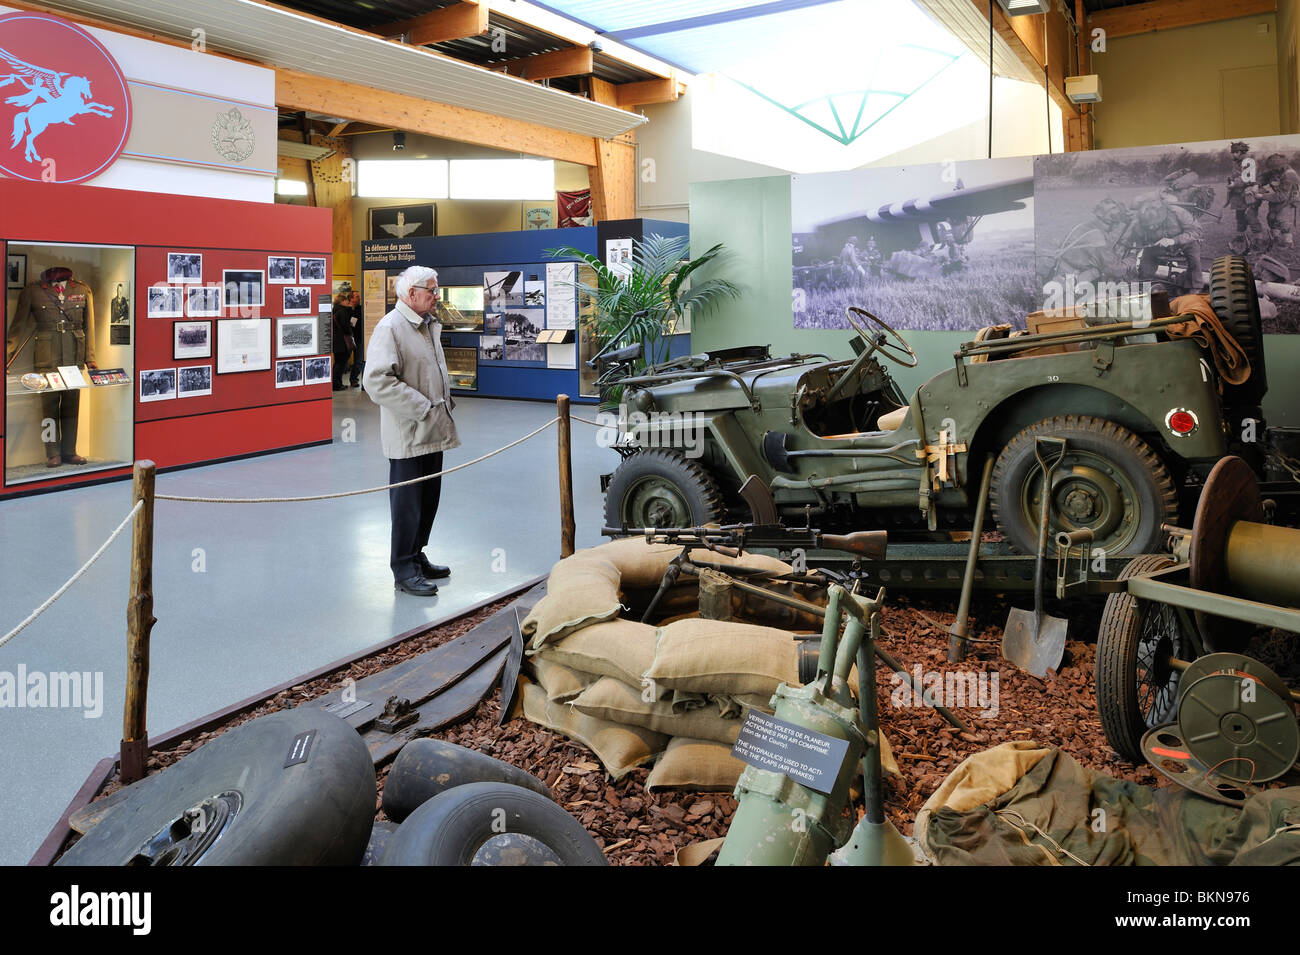 WW2 jeep and weapons at the Second World War Pegasus Museum near Ouistreham, Normandy, France - Stock Image